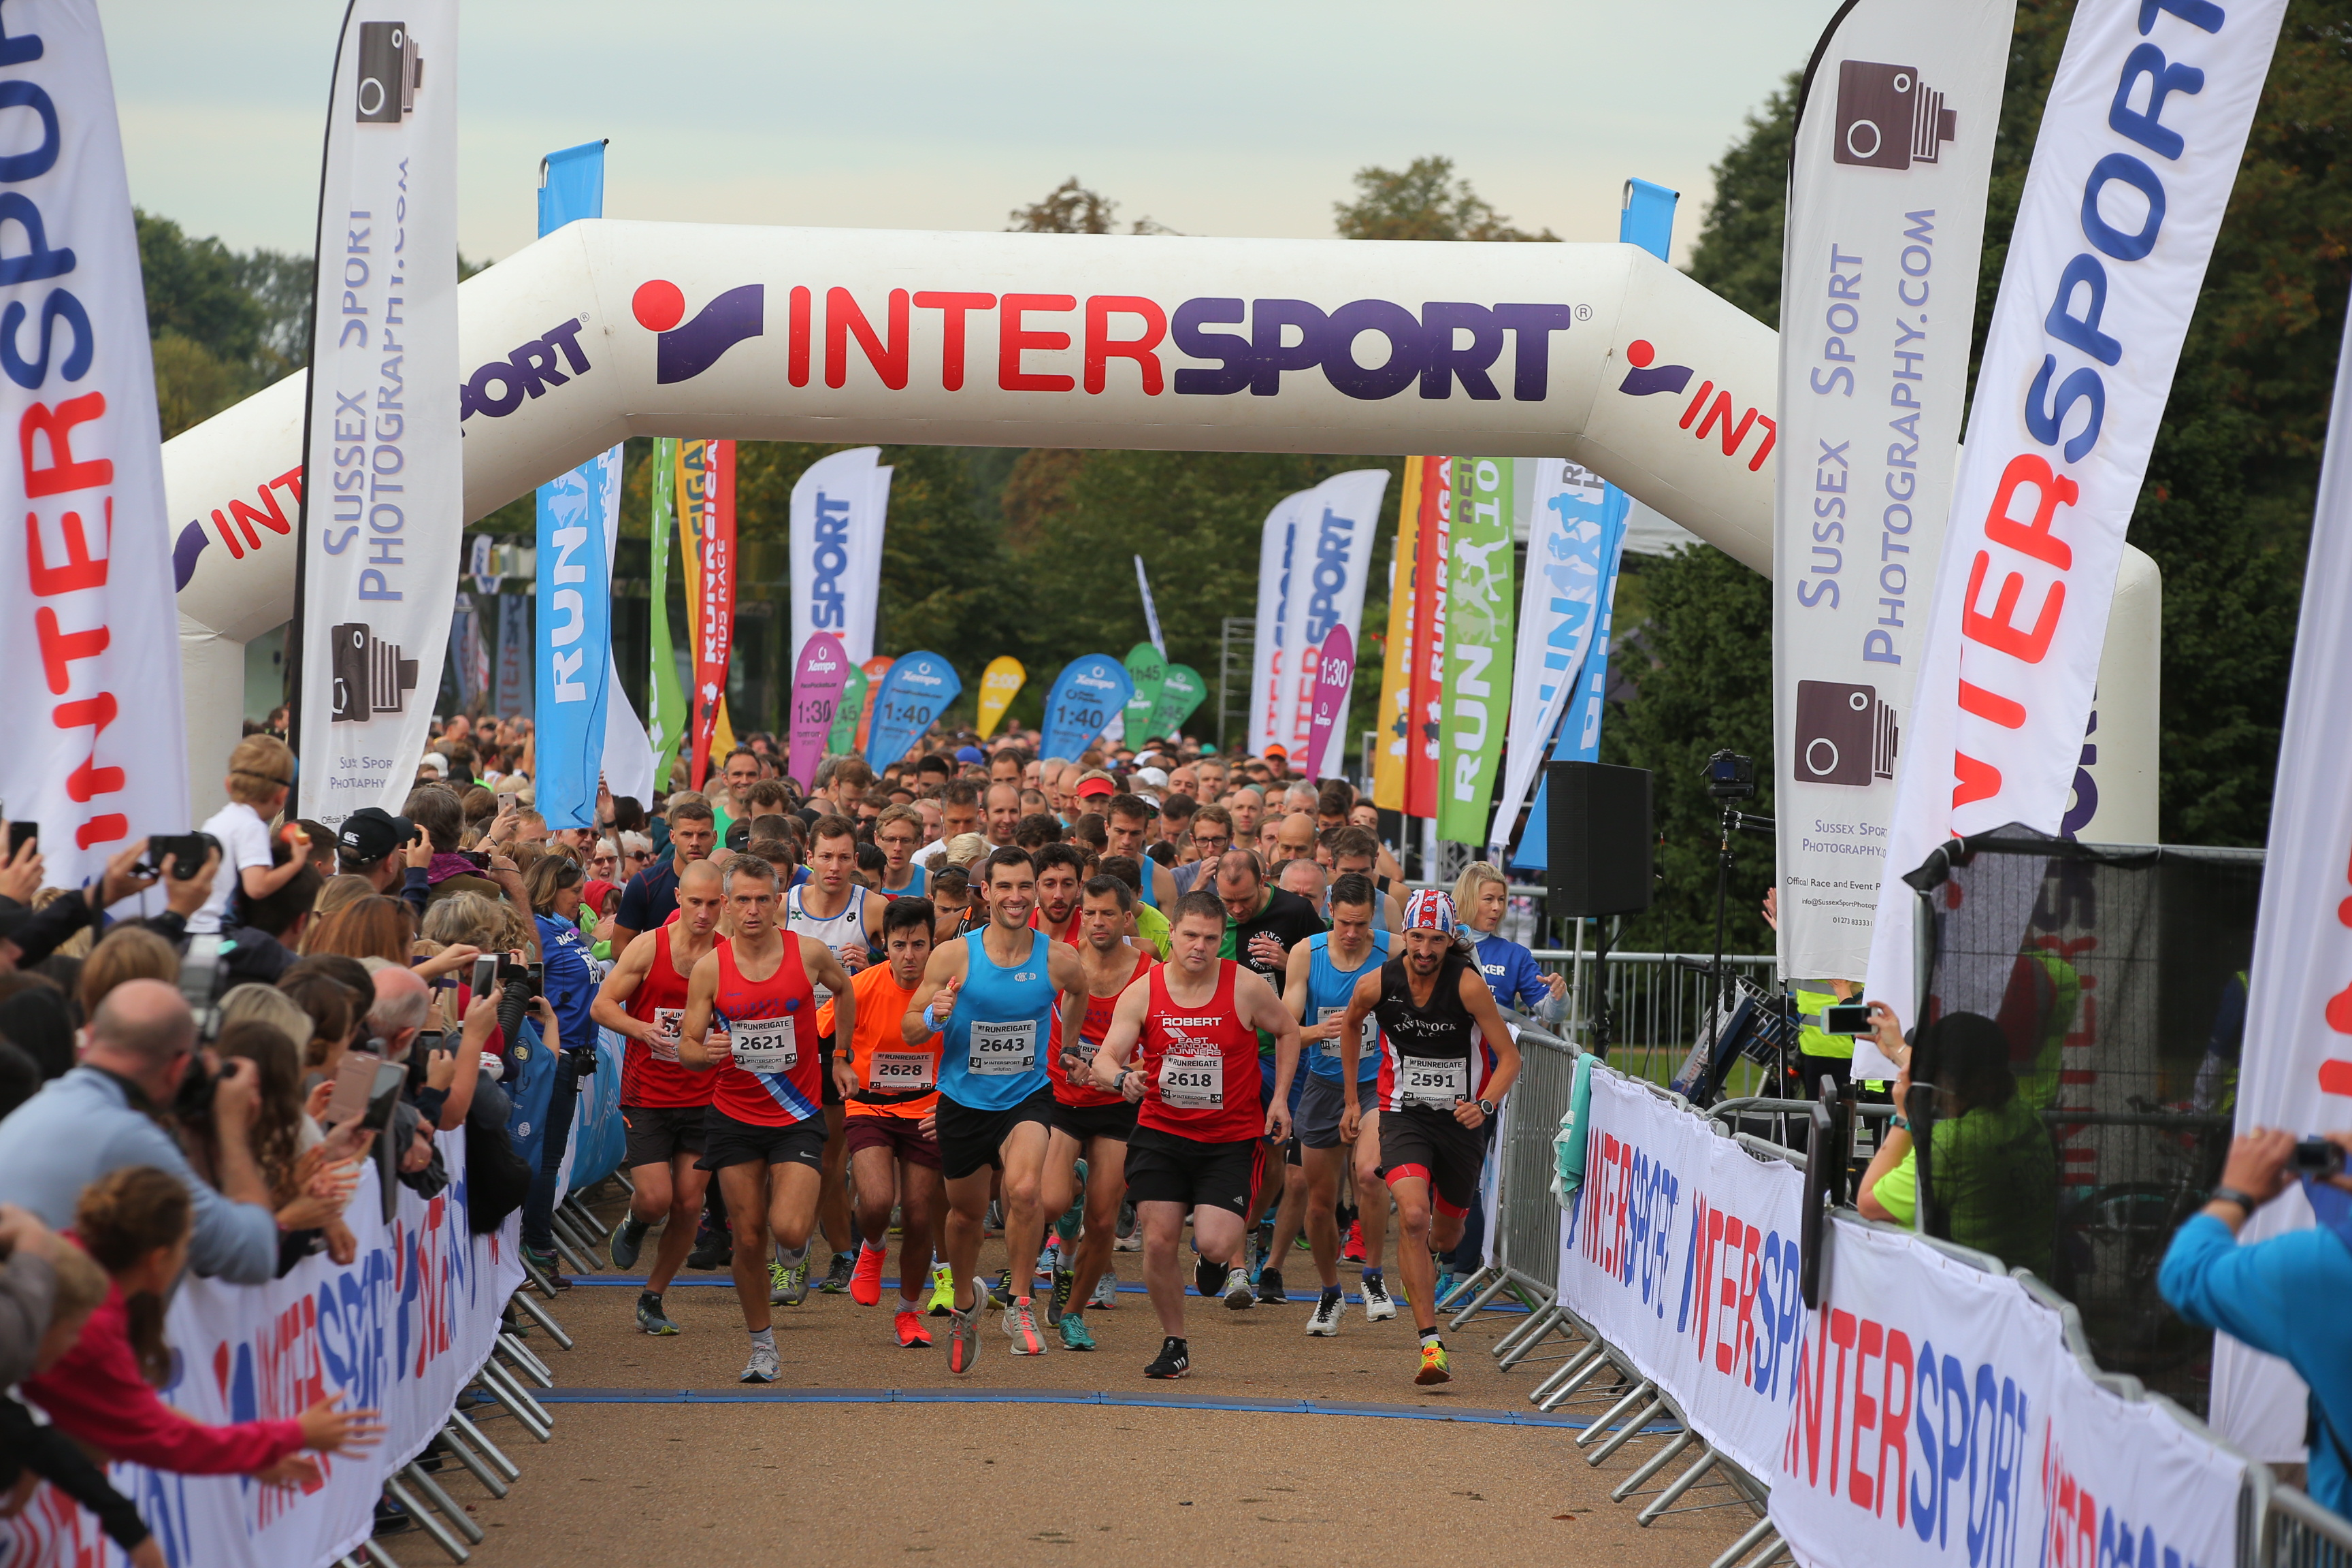 Intersport Run Reigate Half\u002DMarathon, 10K, 5K - cover image